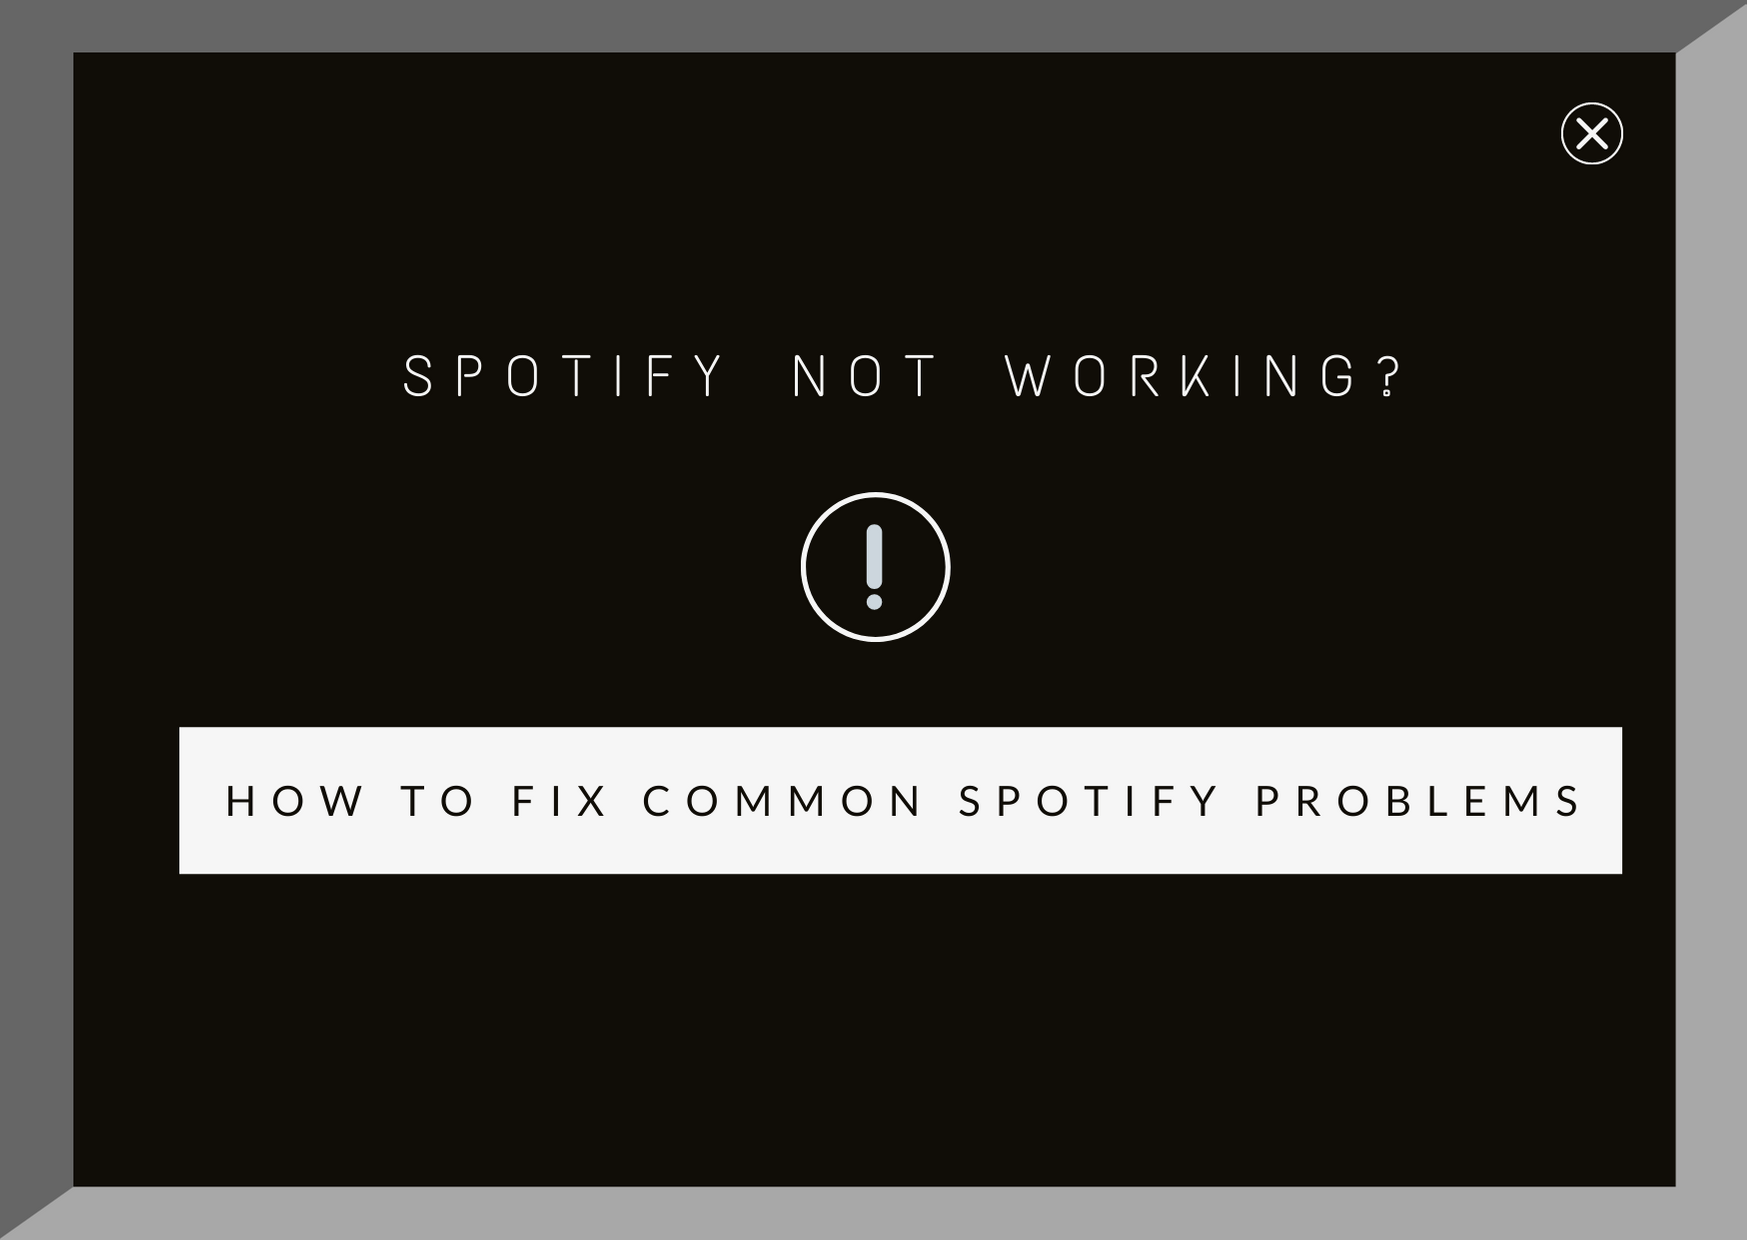 How to fix Spotify not working?